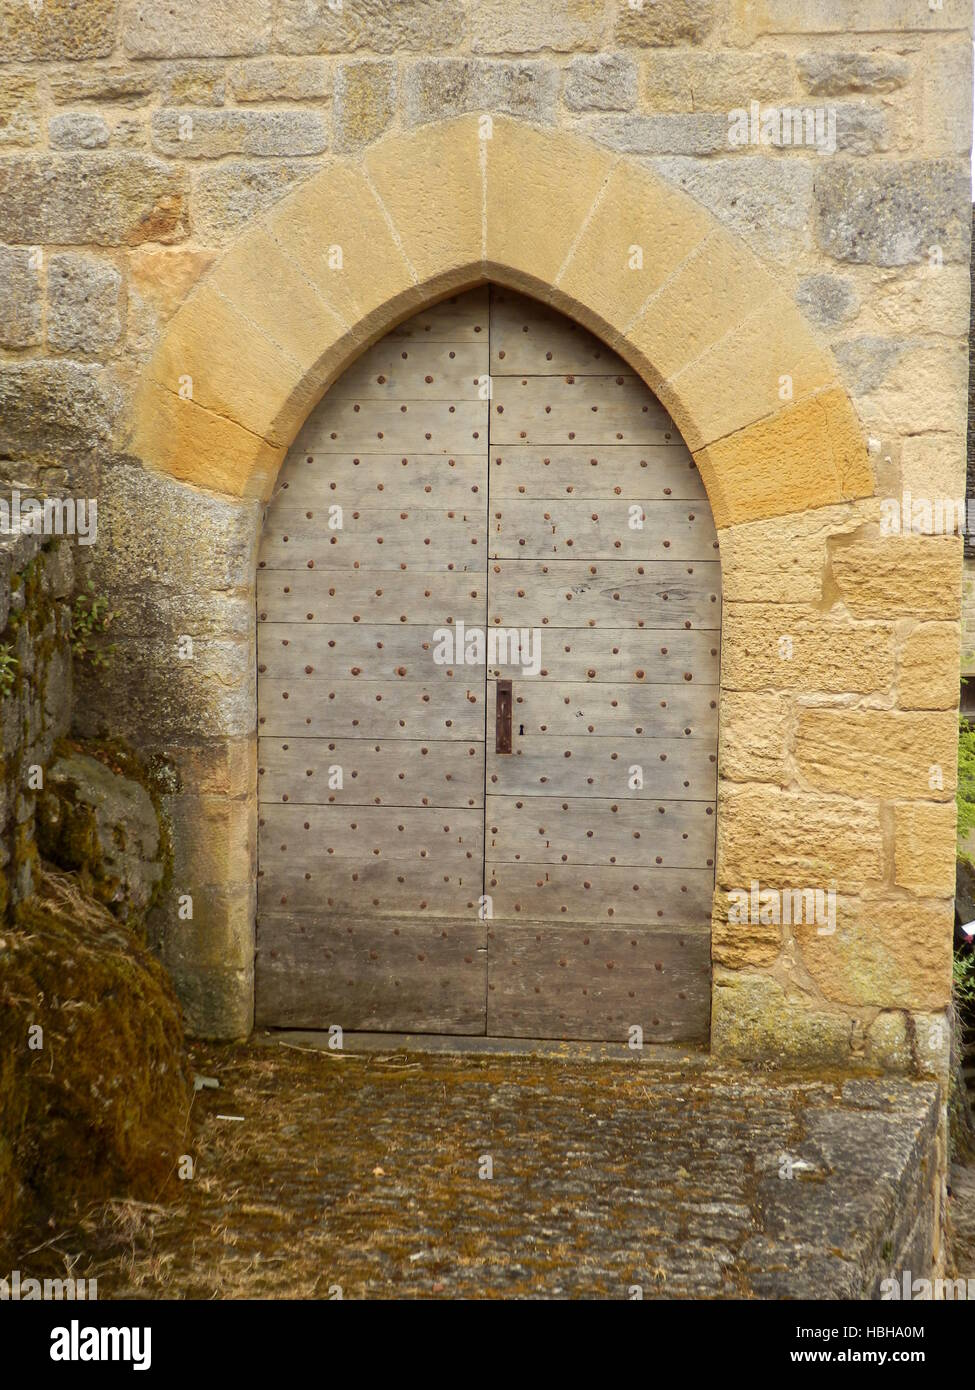 Medieval Arched Double Doors - Stock Image